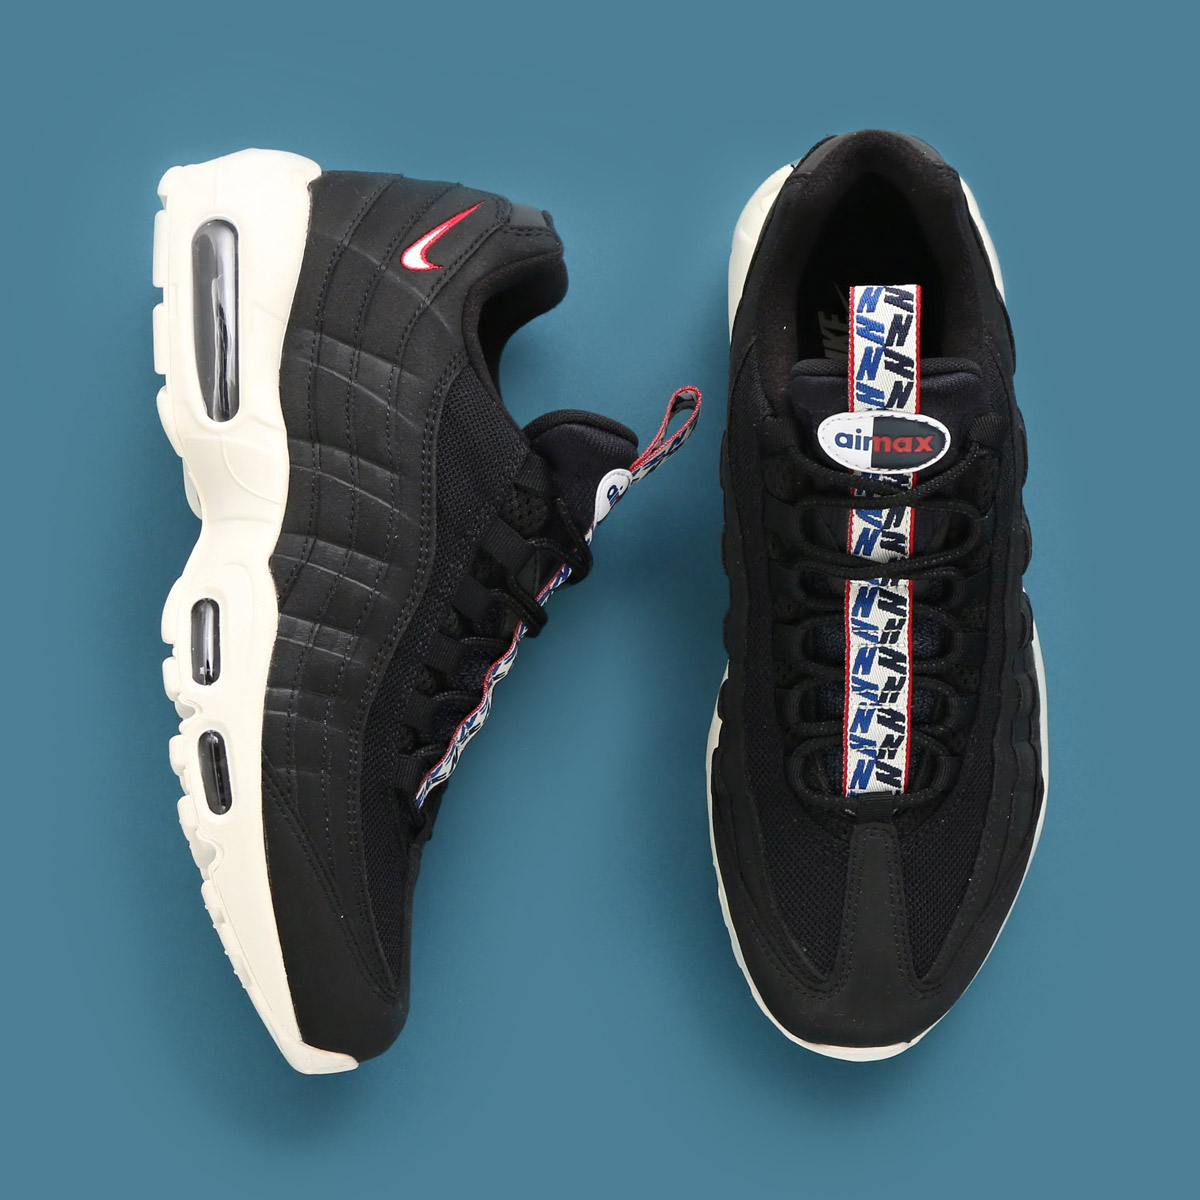 dc10217f92 Categories. « All Categories · Shoes · Men's Shoes · Sneakers · NIKE AIR  MAX 95 TT ...